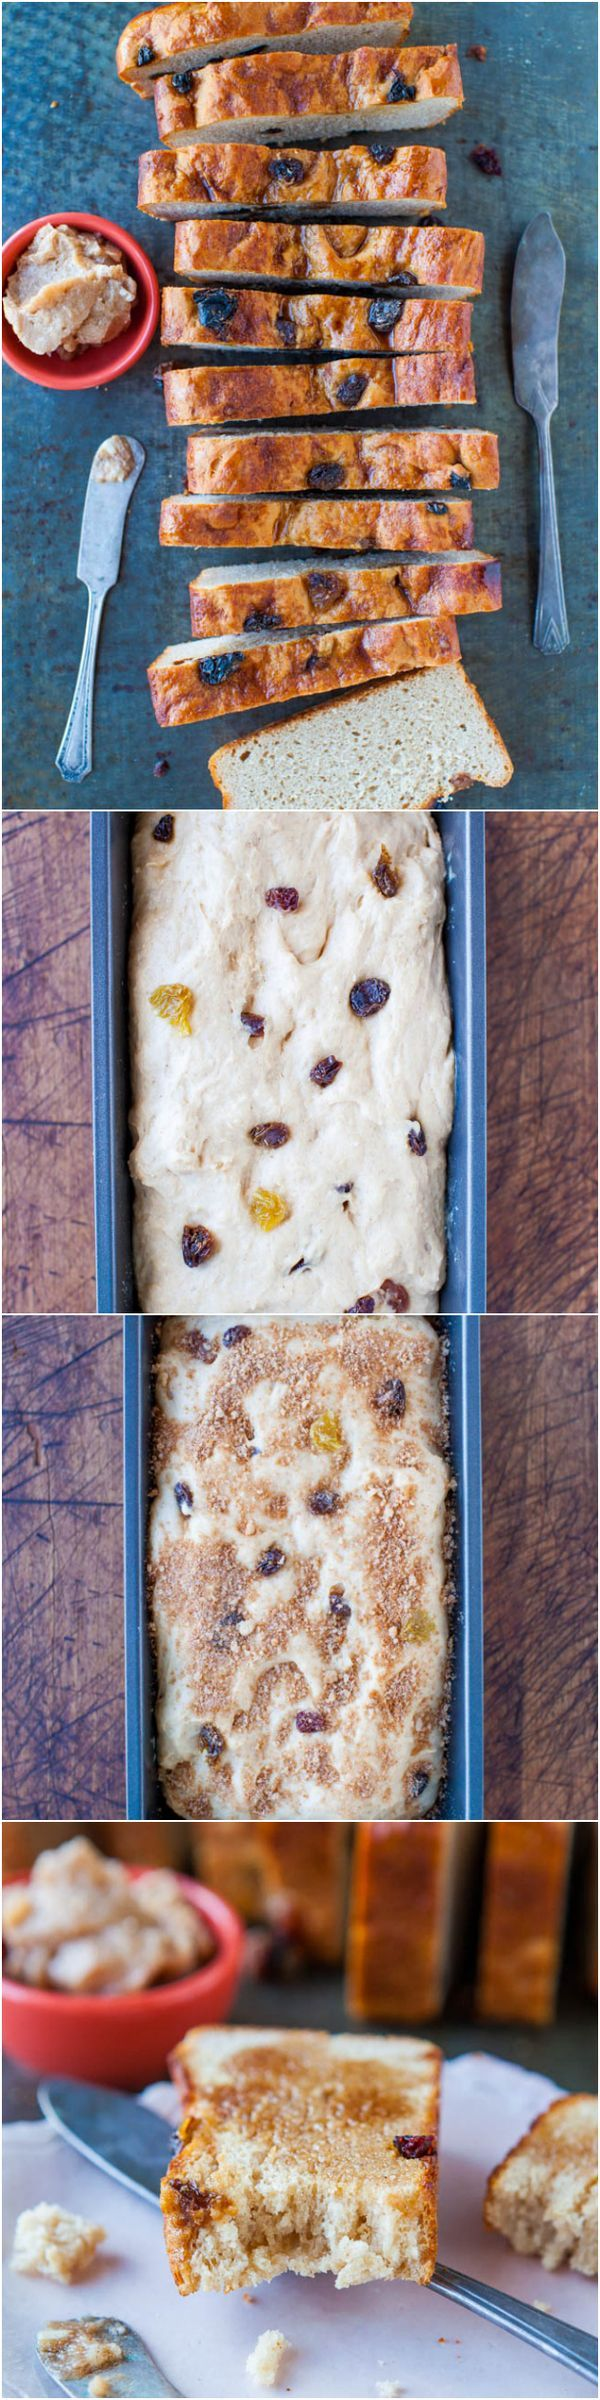 Cinnamon Raisin English Muffin Bread with Cinnamon Sugar Butter - No-knead, foolproof recipe so you don't have to buy English muffins anymore!